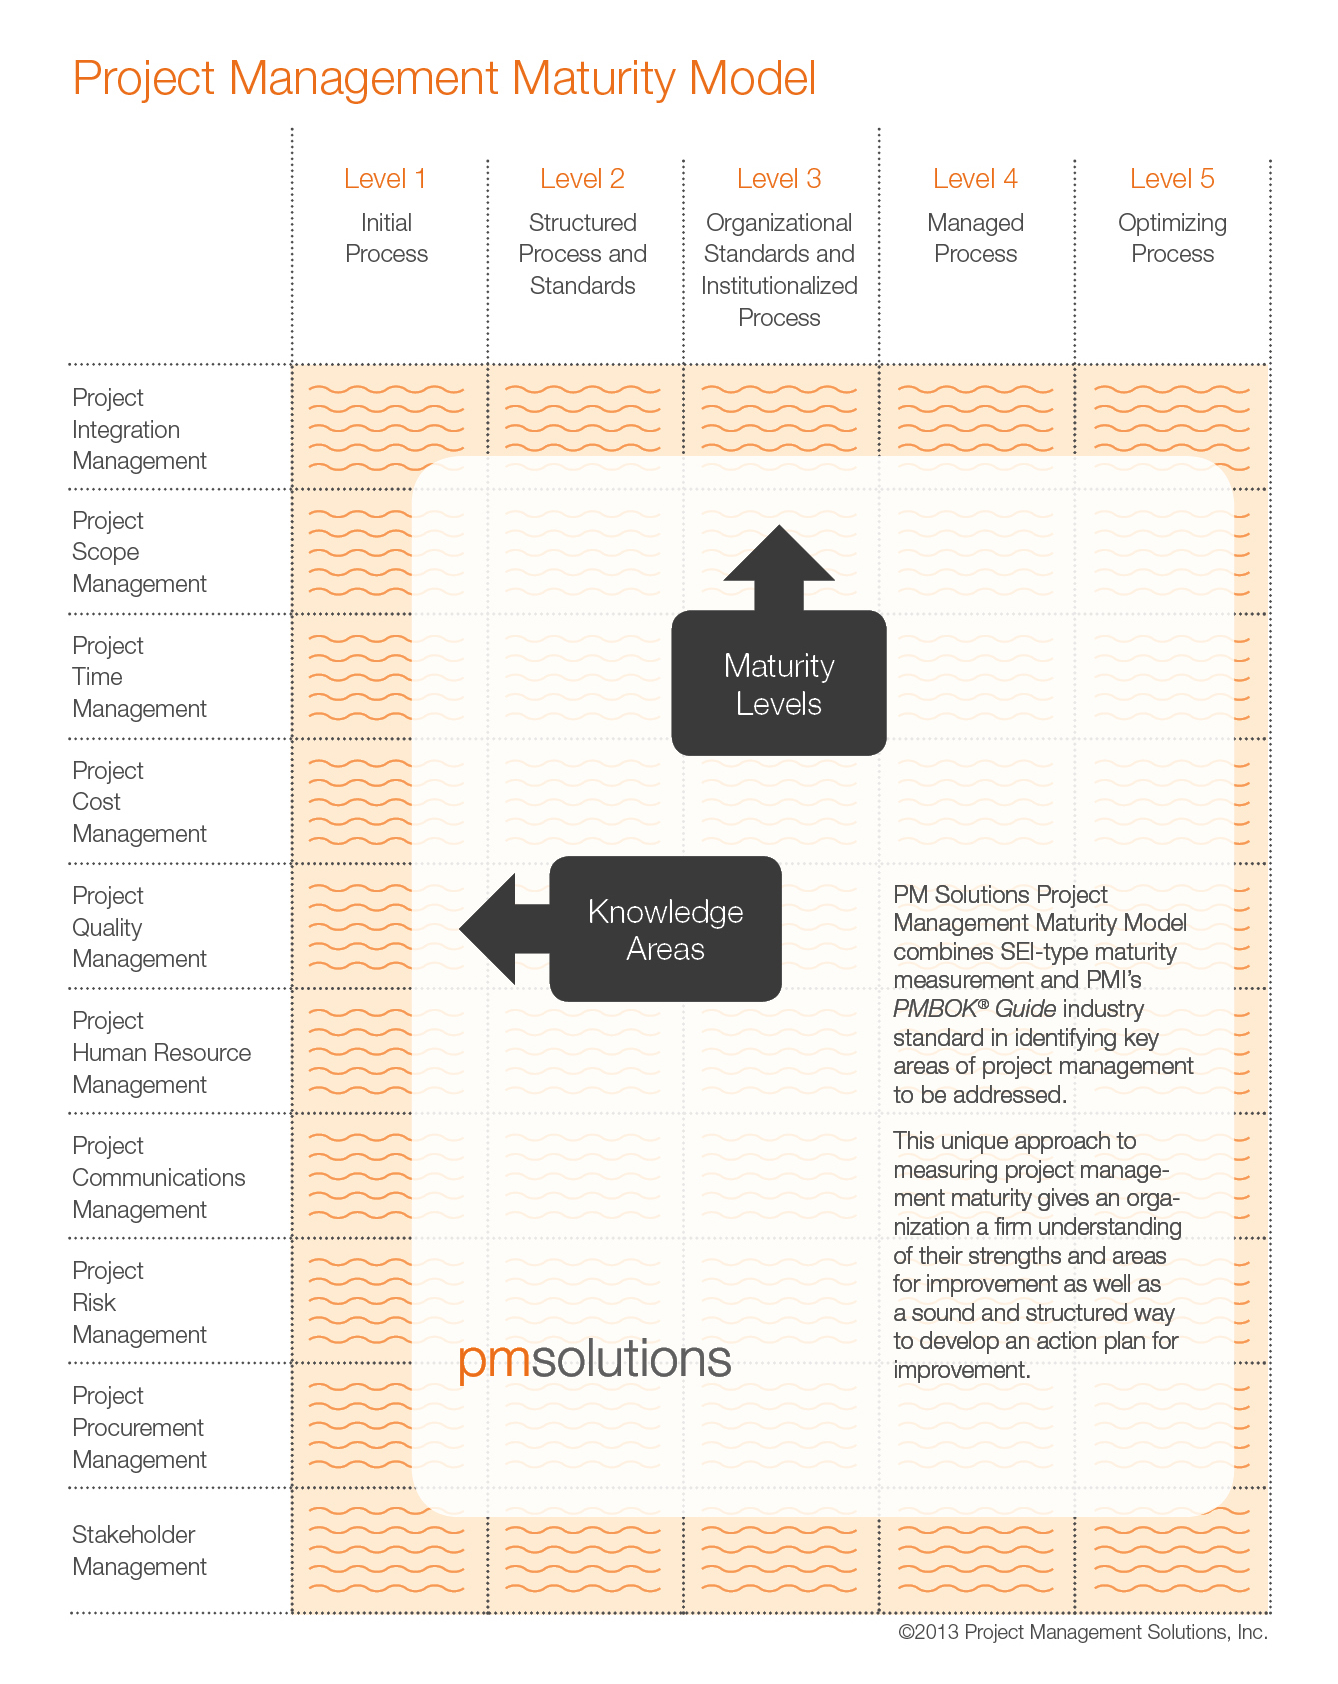 What is the Project Management Maturity Model (PMMM)?